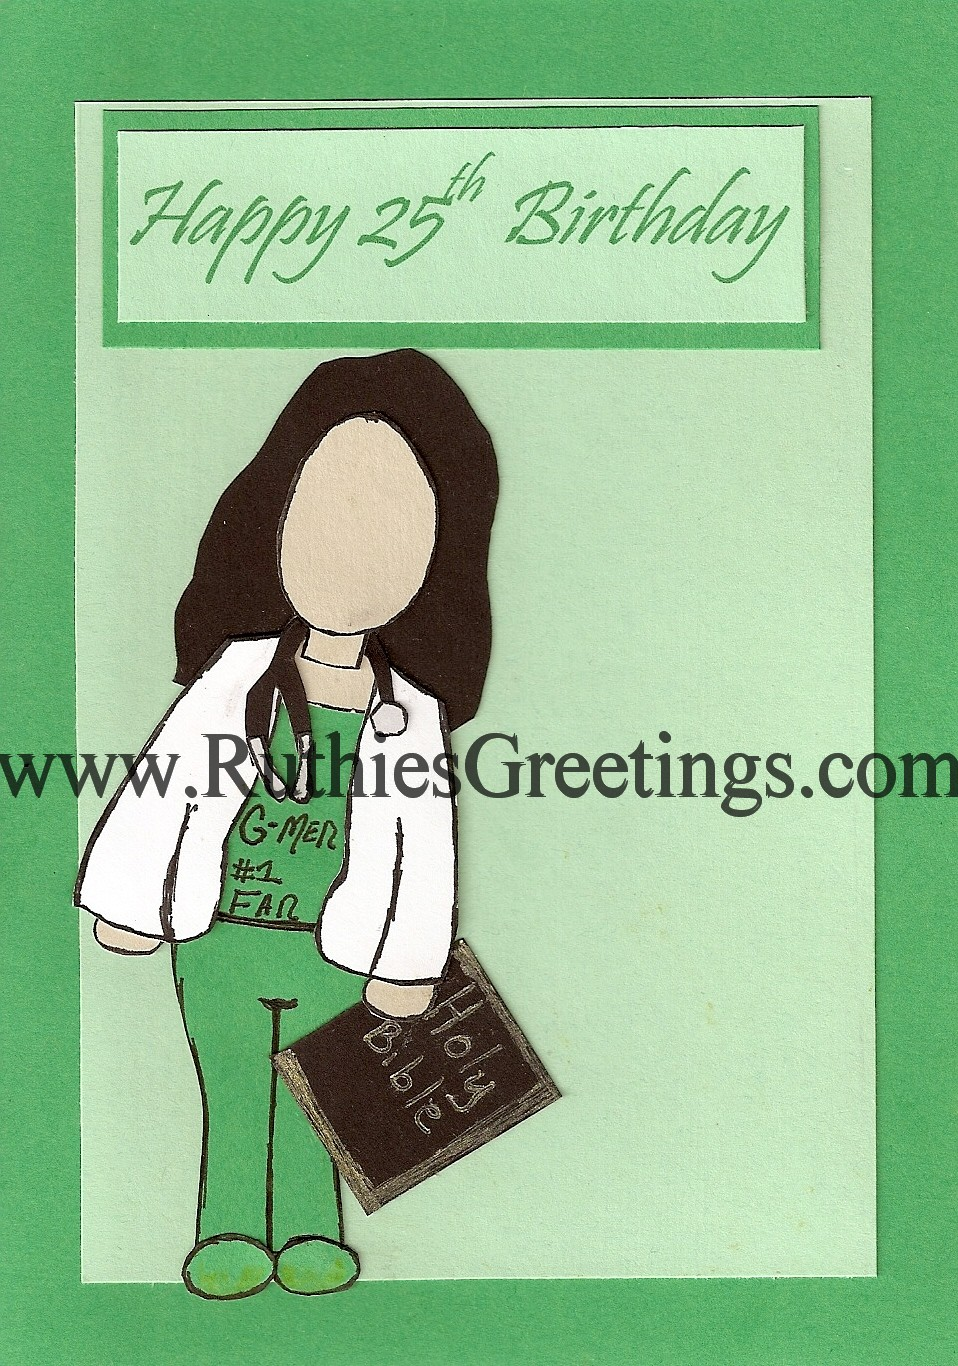 Happy 25th birthday doctor lawyer editions happy 25th birthday doctor lawyer editions m4hsunfo